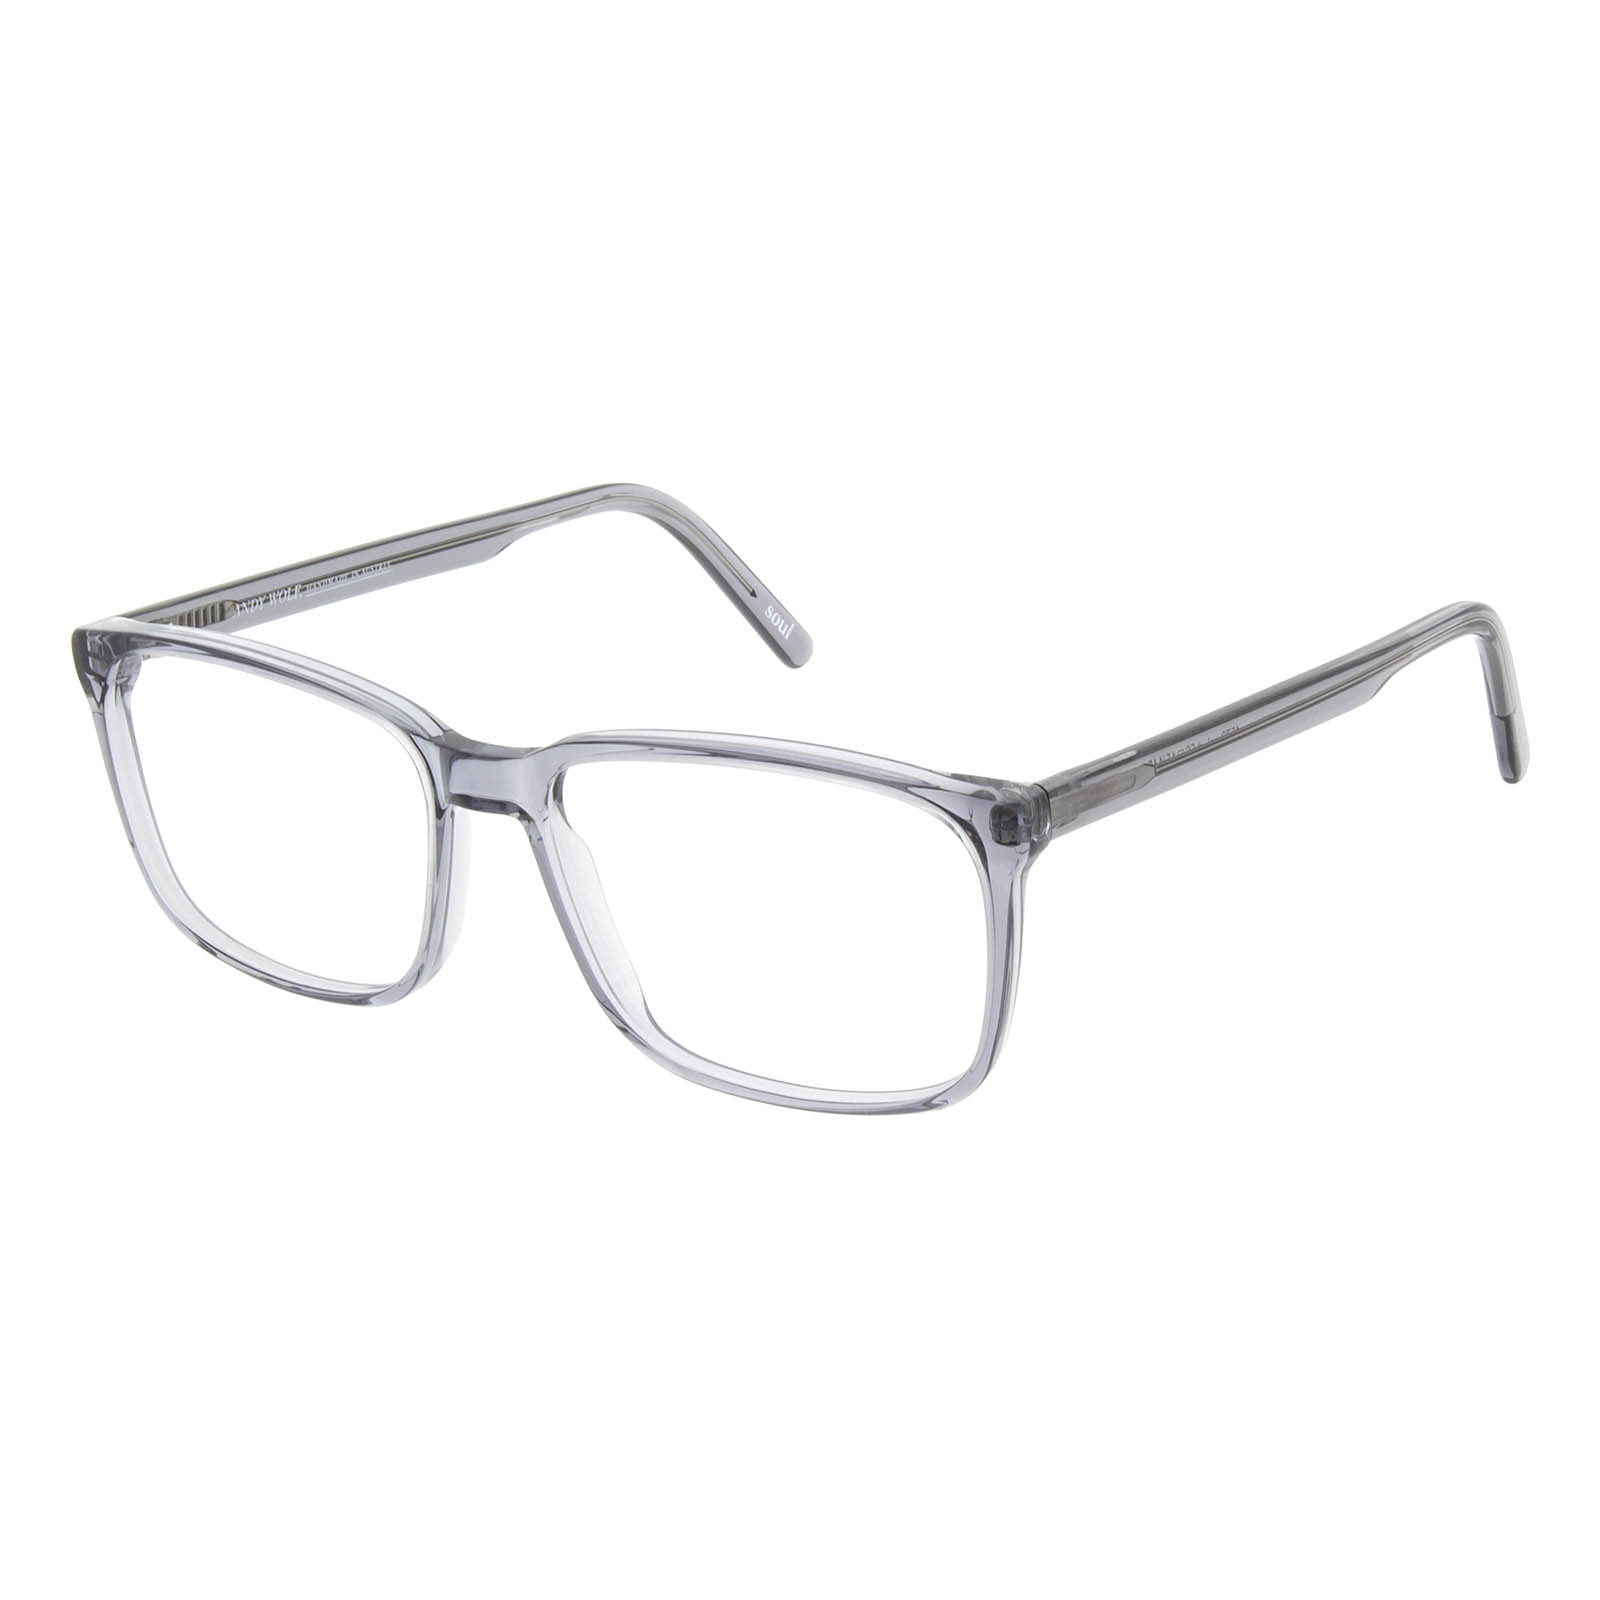 ANDY WOLF EYEWEAR_4572_D_side